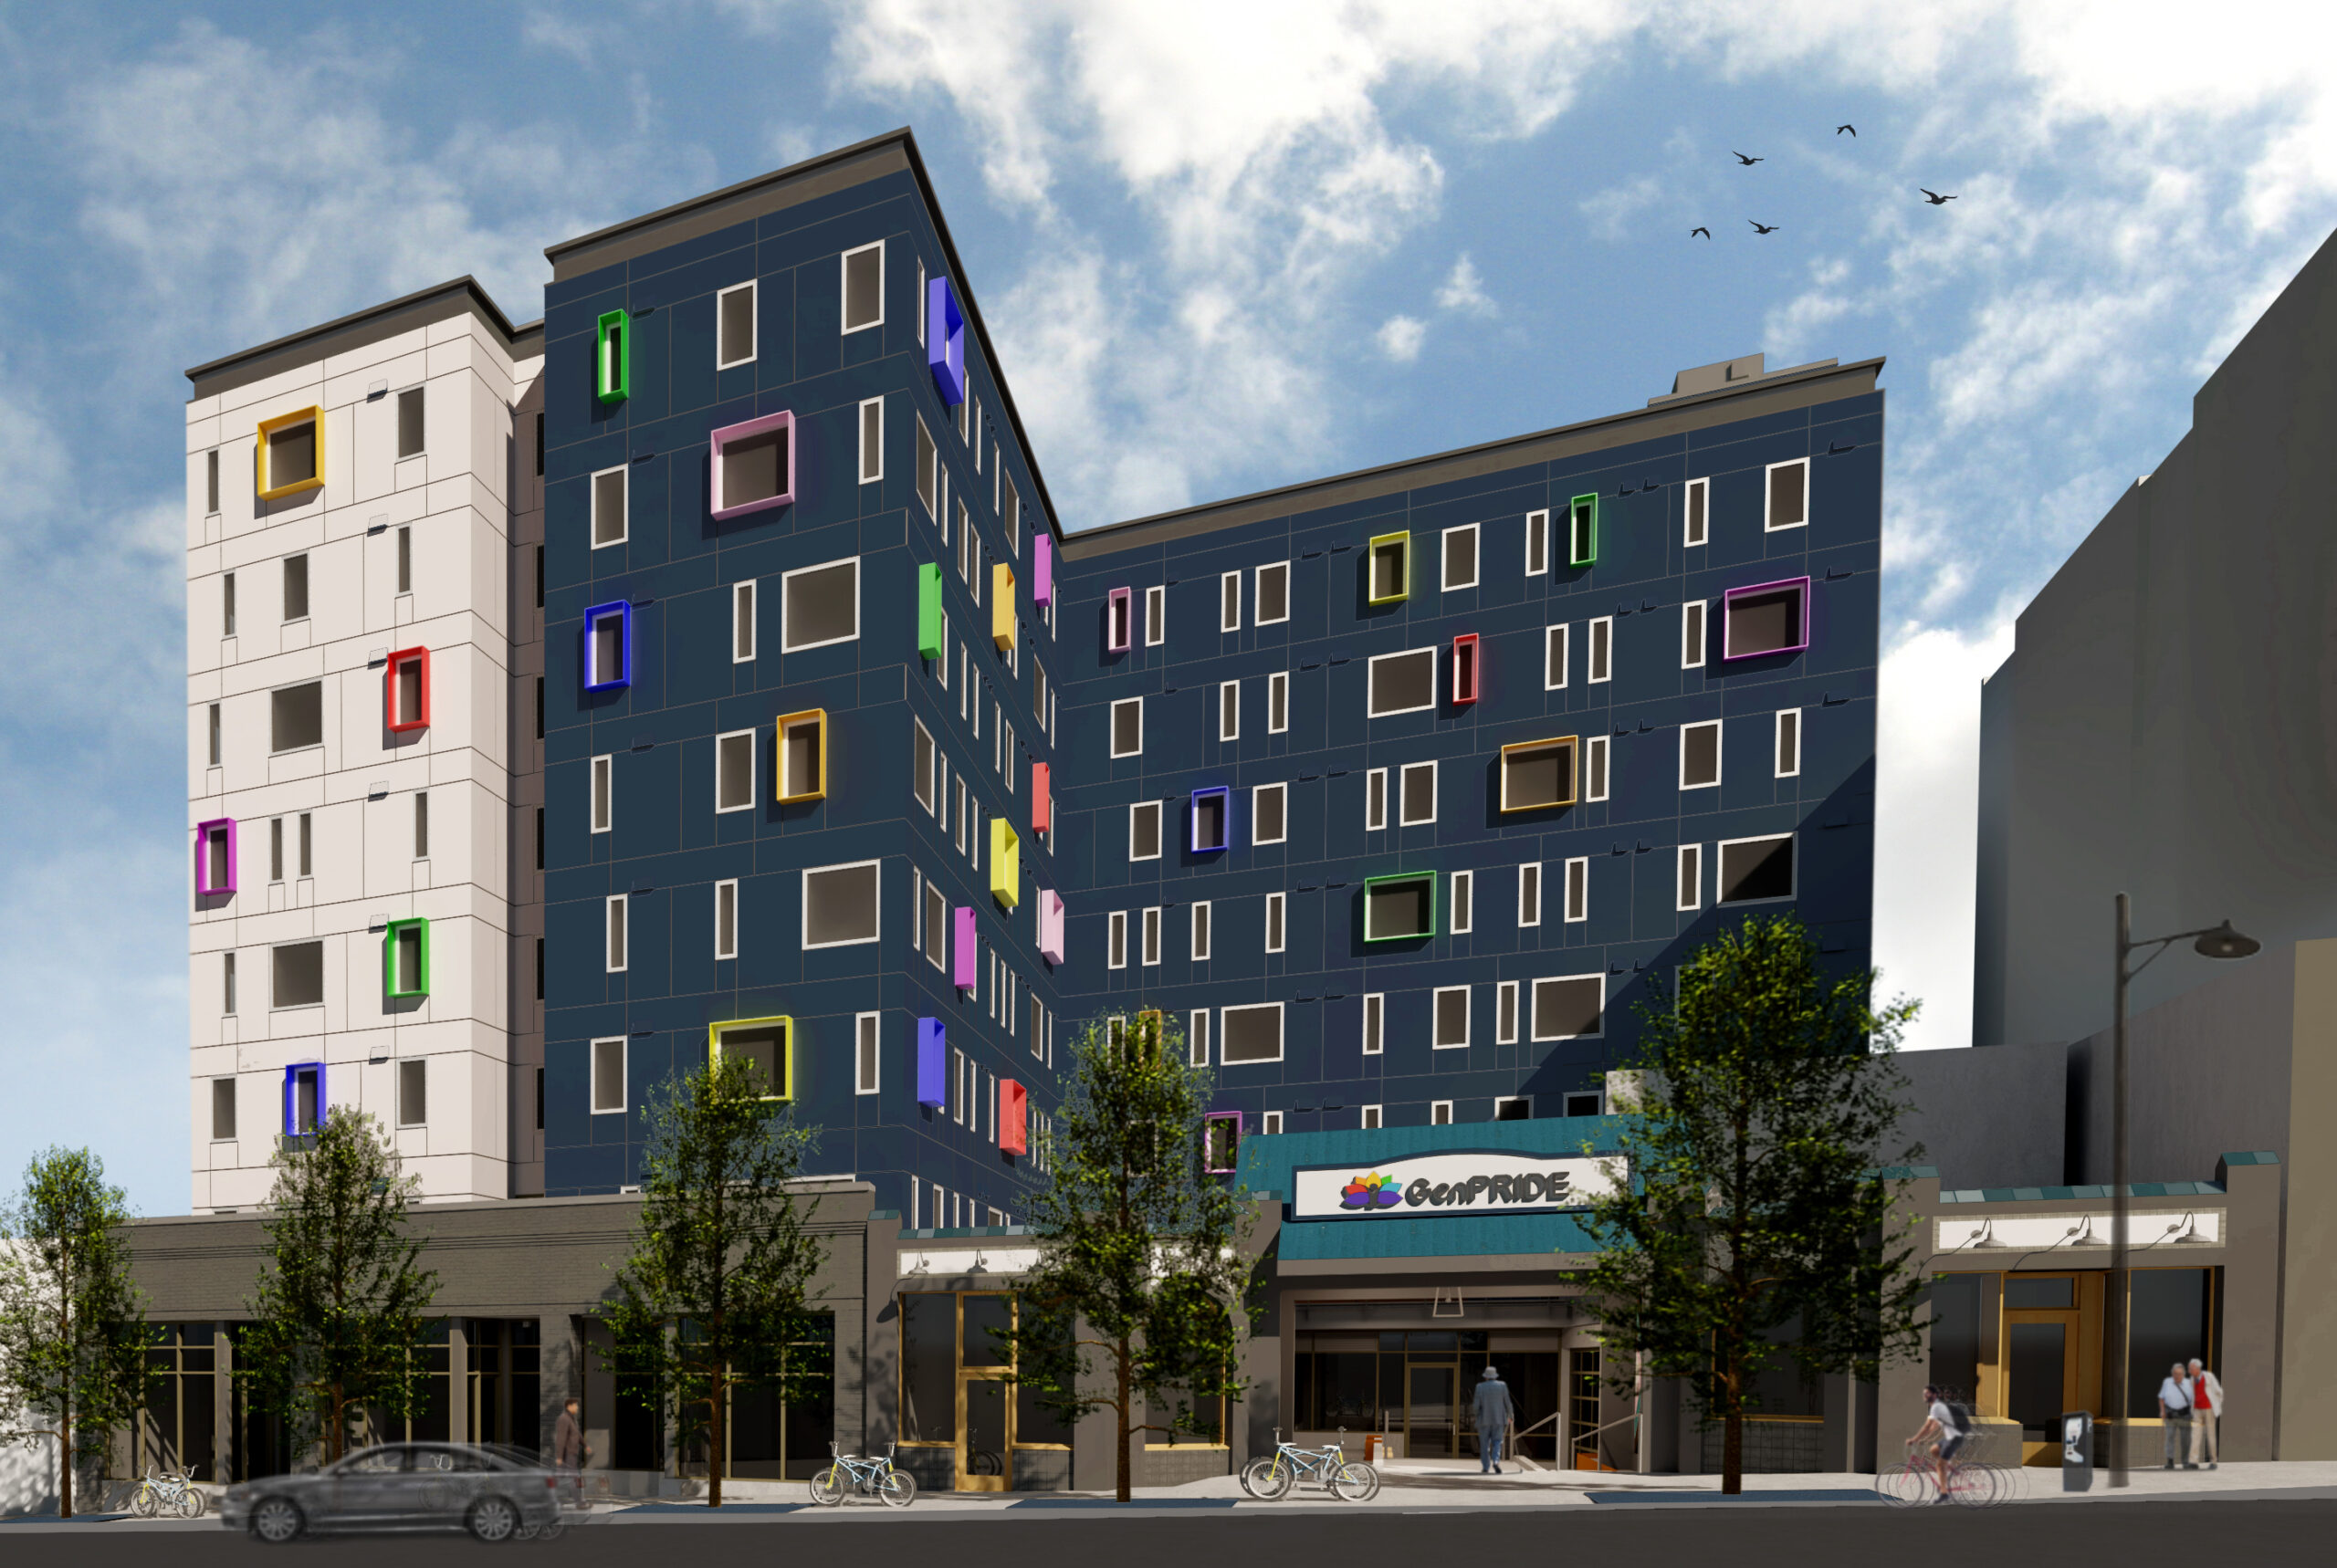 PRIDE PLACE, FIRST WASHINGTON LGBTQIA+ AFFIRMING SENIOR HOUSING PROJECT TO BREAK GROUND ON CAPITOL HILL